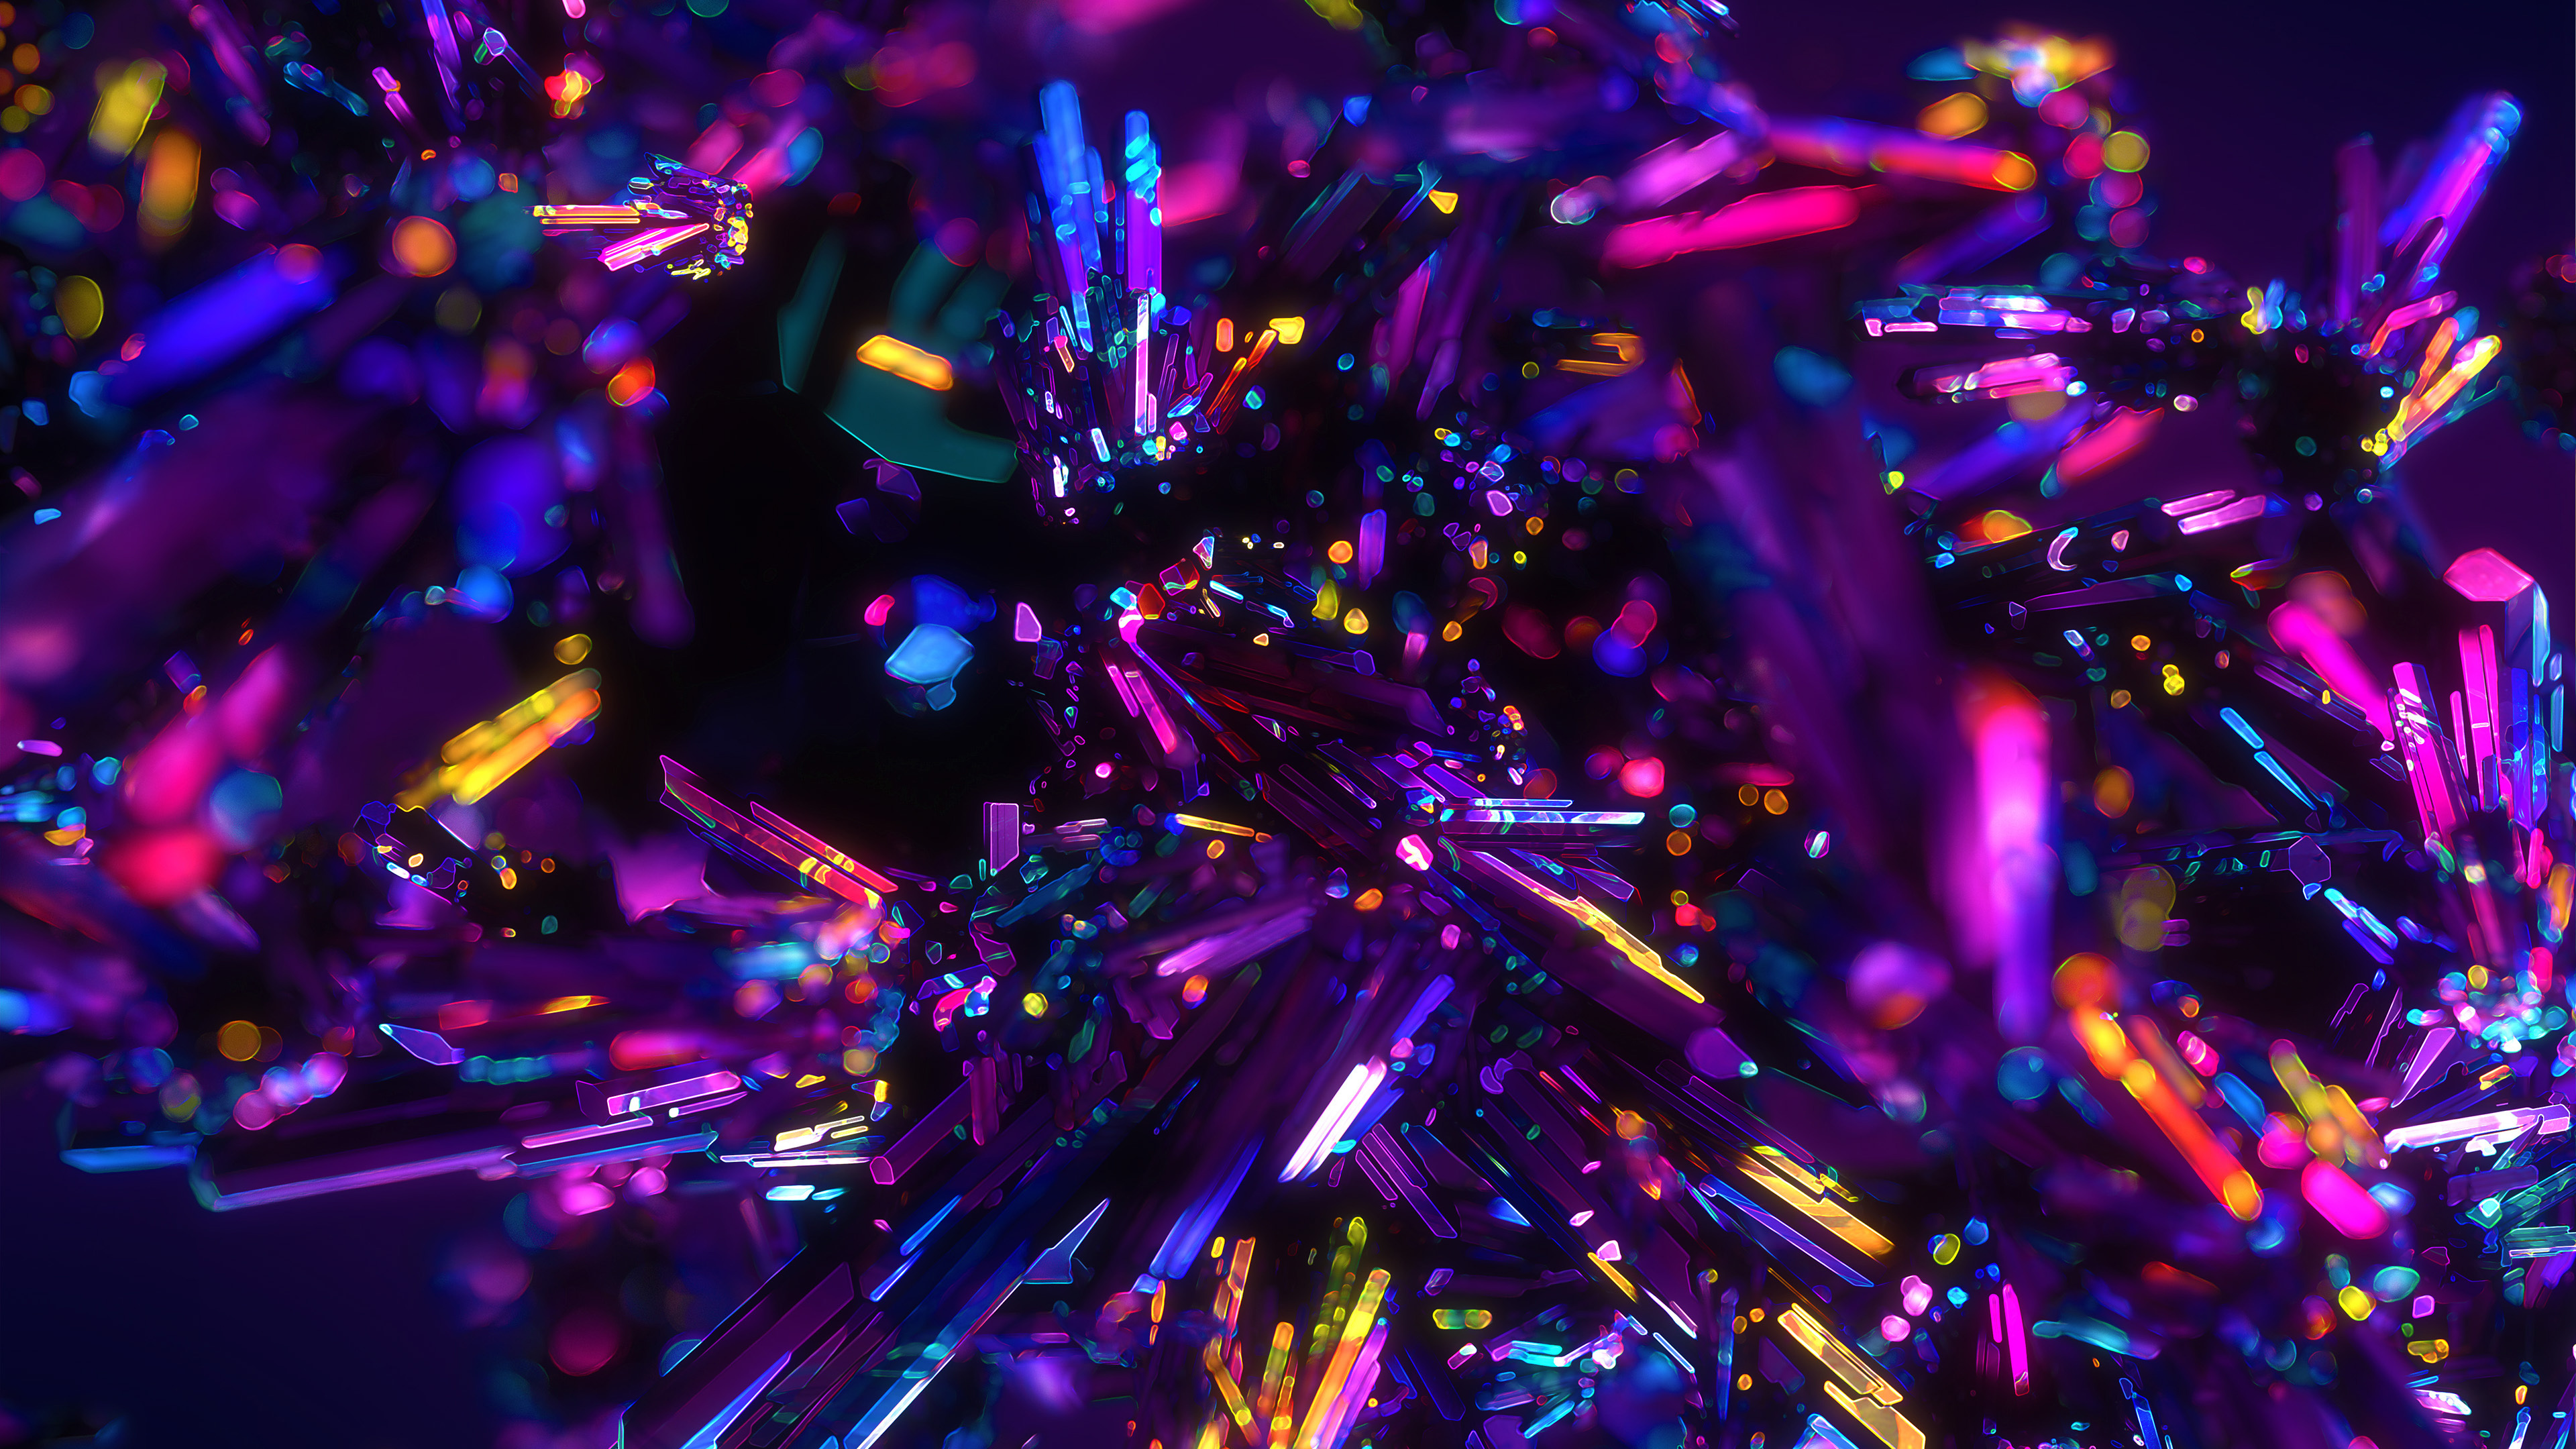 Cool Nature Wallpapers 3d Colorful Crystals Abstract 4k Wallpapers Hd Wallpapers